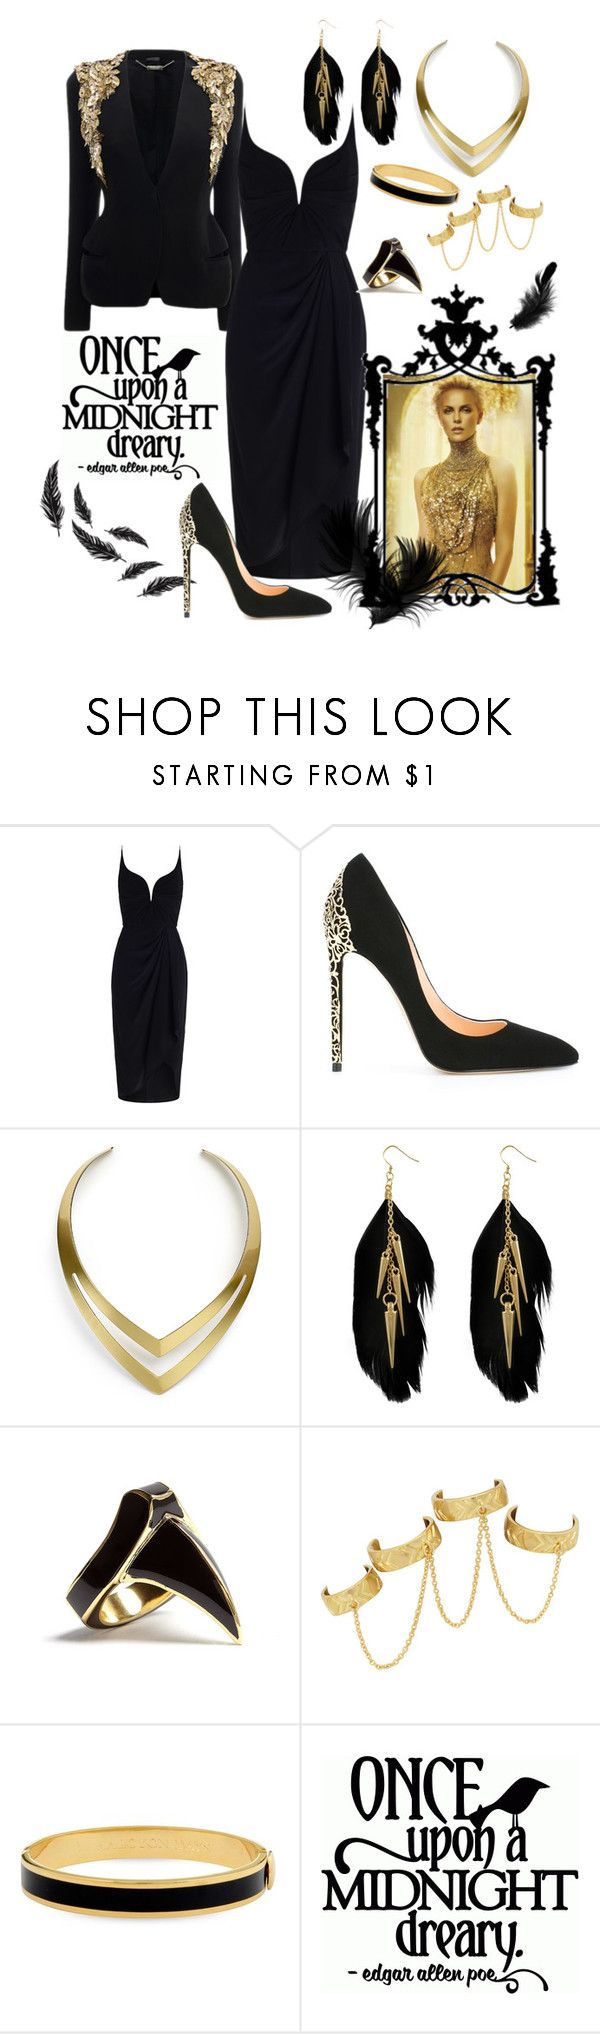 """""""Unbenannt #369"""" by funkenregen ❤ liked on Polyvore featuring Alexander McQueen, Zimmermann, Cerasella Milano, Jules Smith, Miso, DJ By Dominic Jones, House of Harlow 1960 and Halcyon Days"""